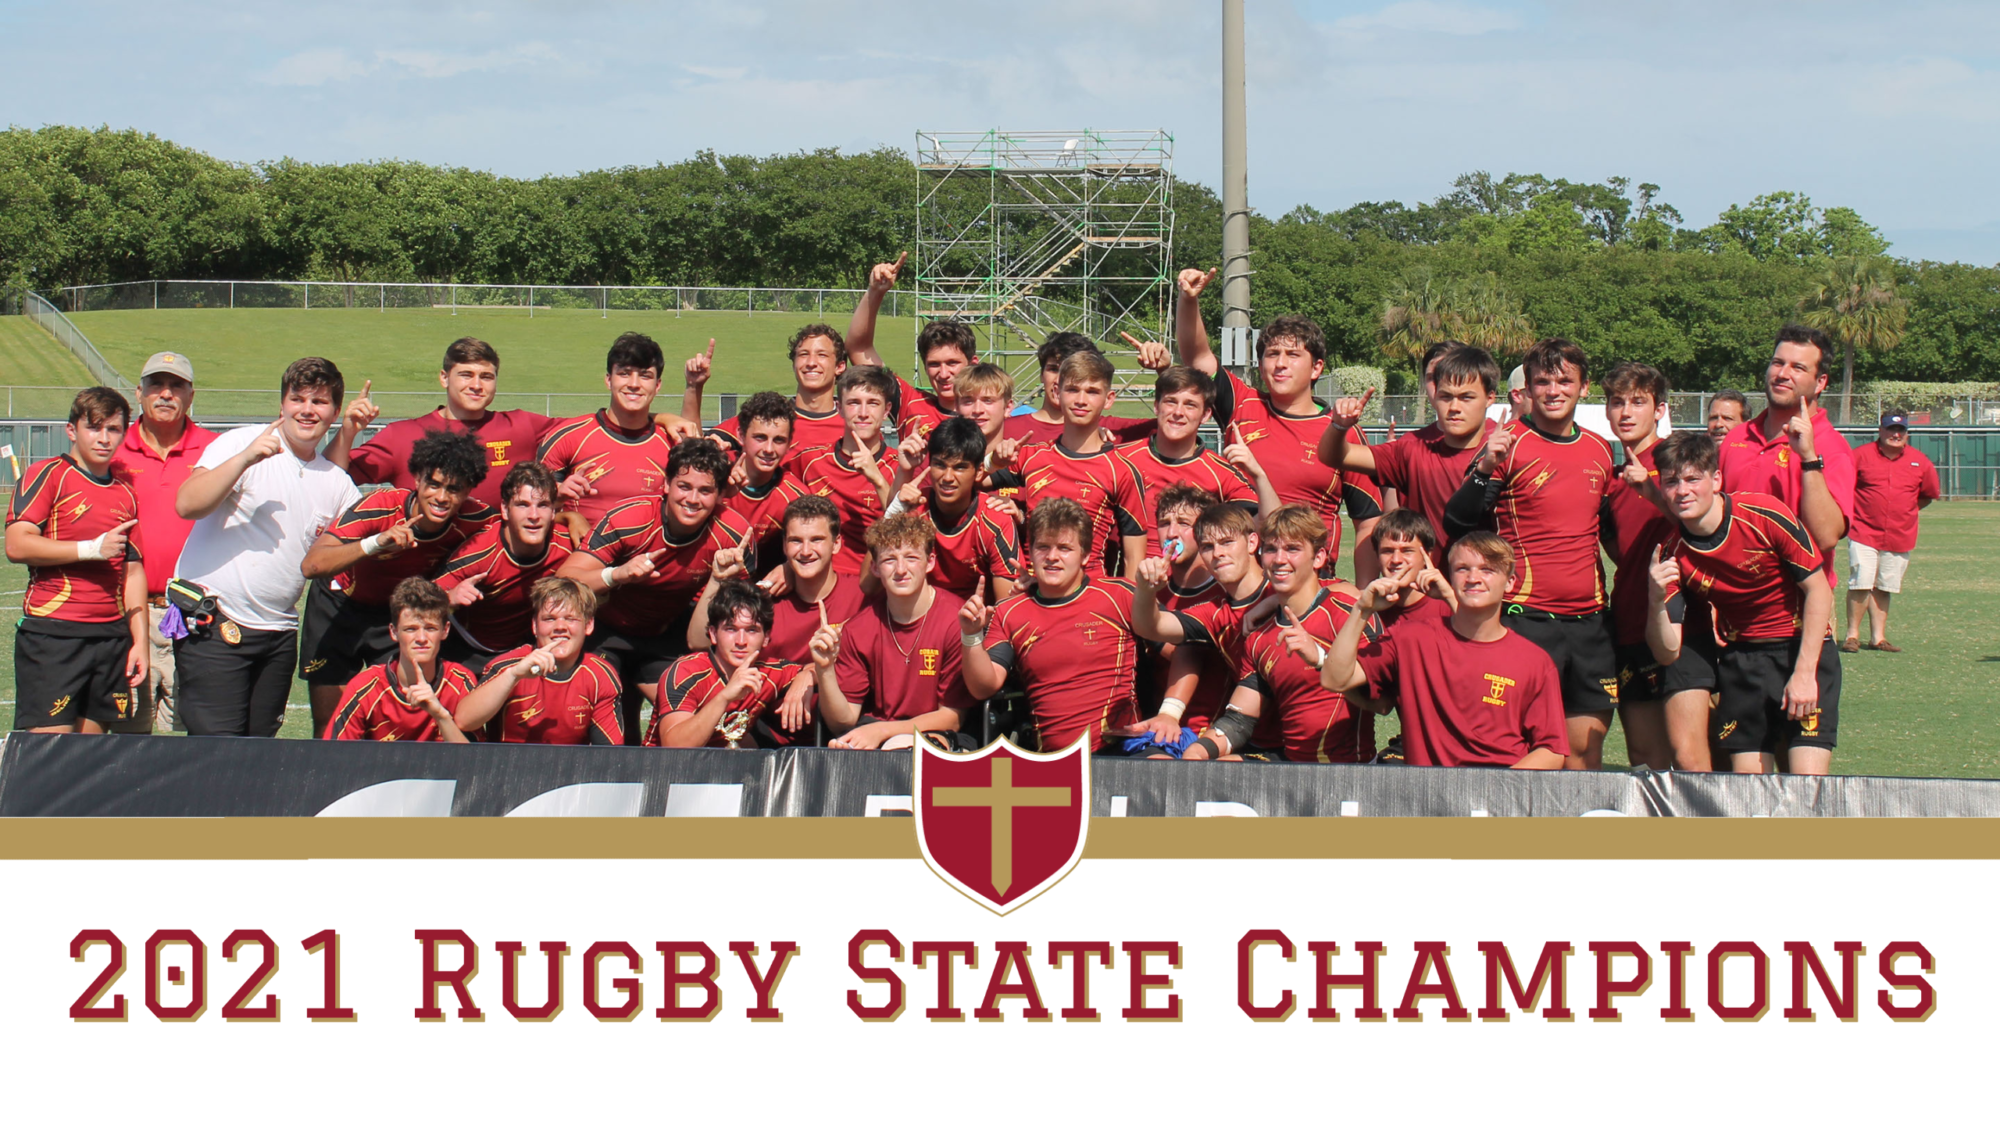 2021 Rugby State Champions